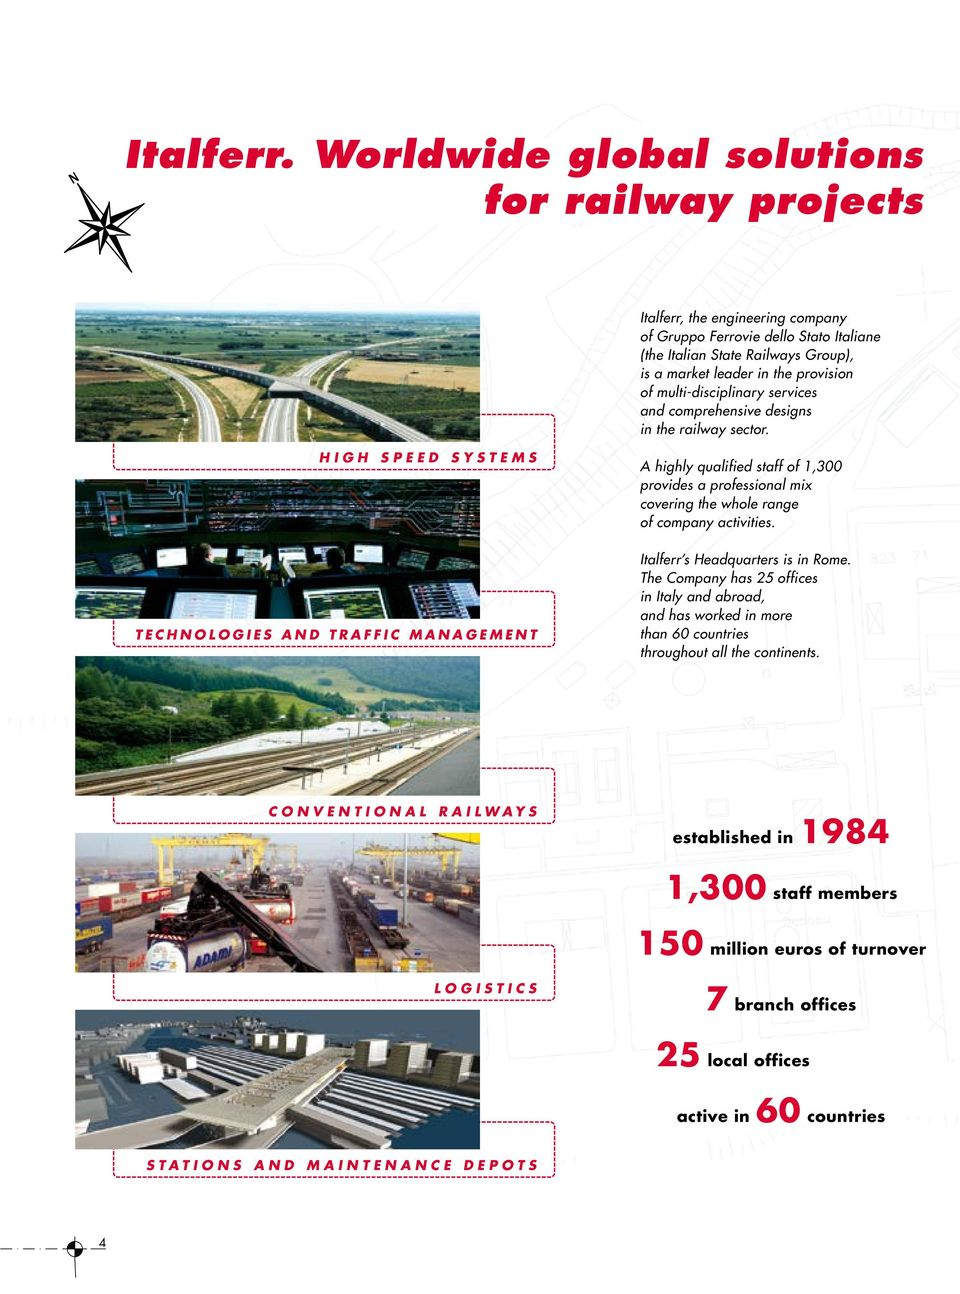 multi-disciplinary services and comprehensive designs in the railway sector.